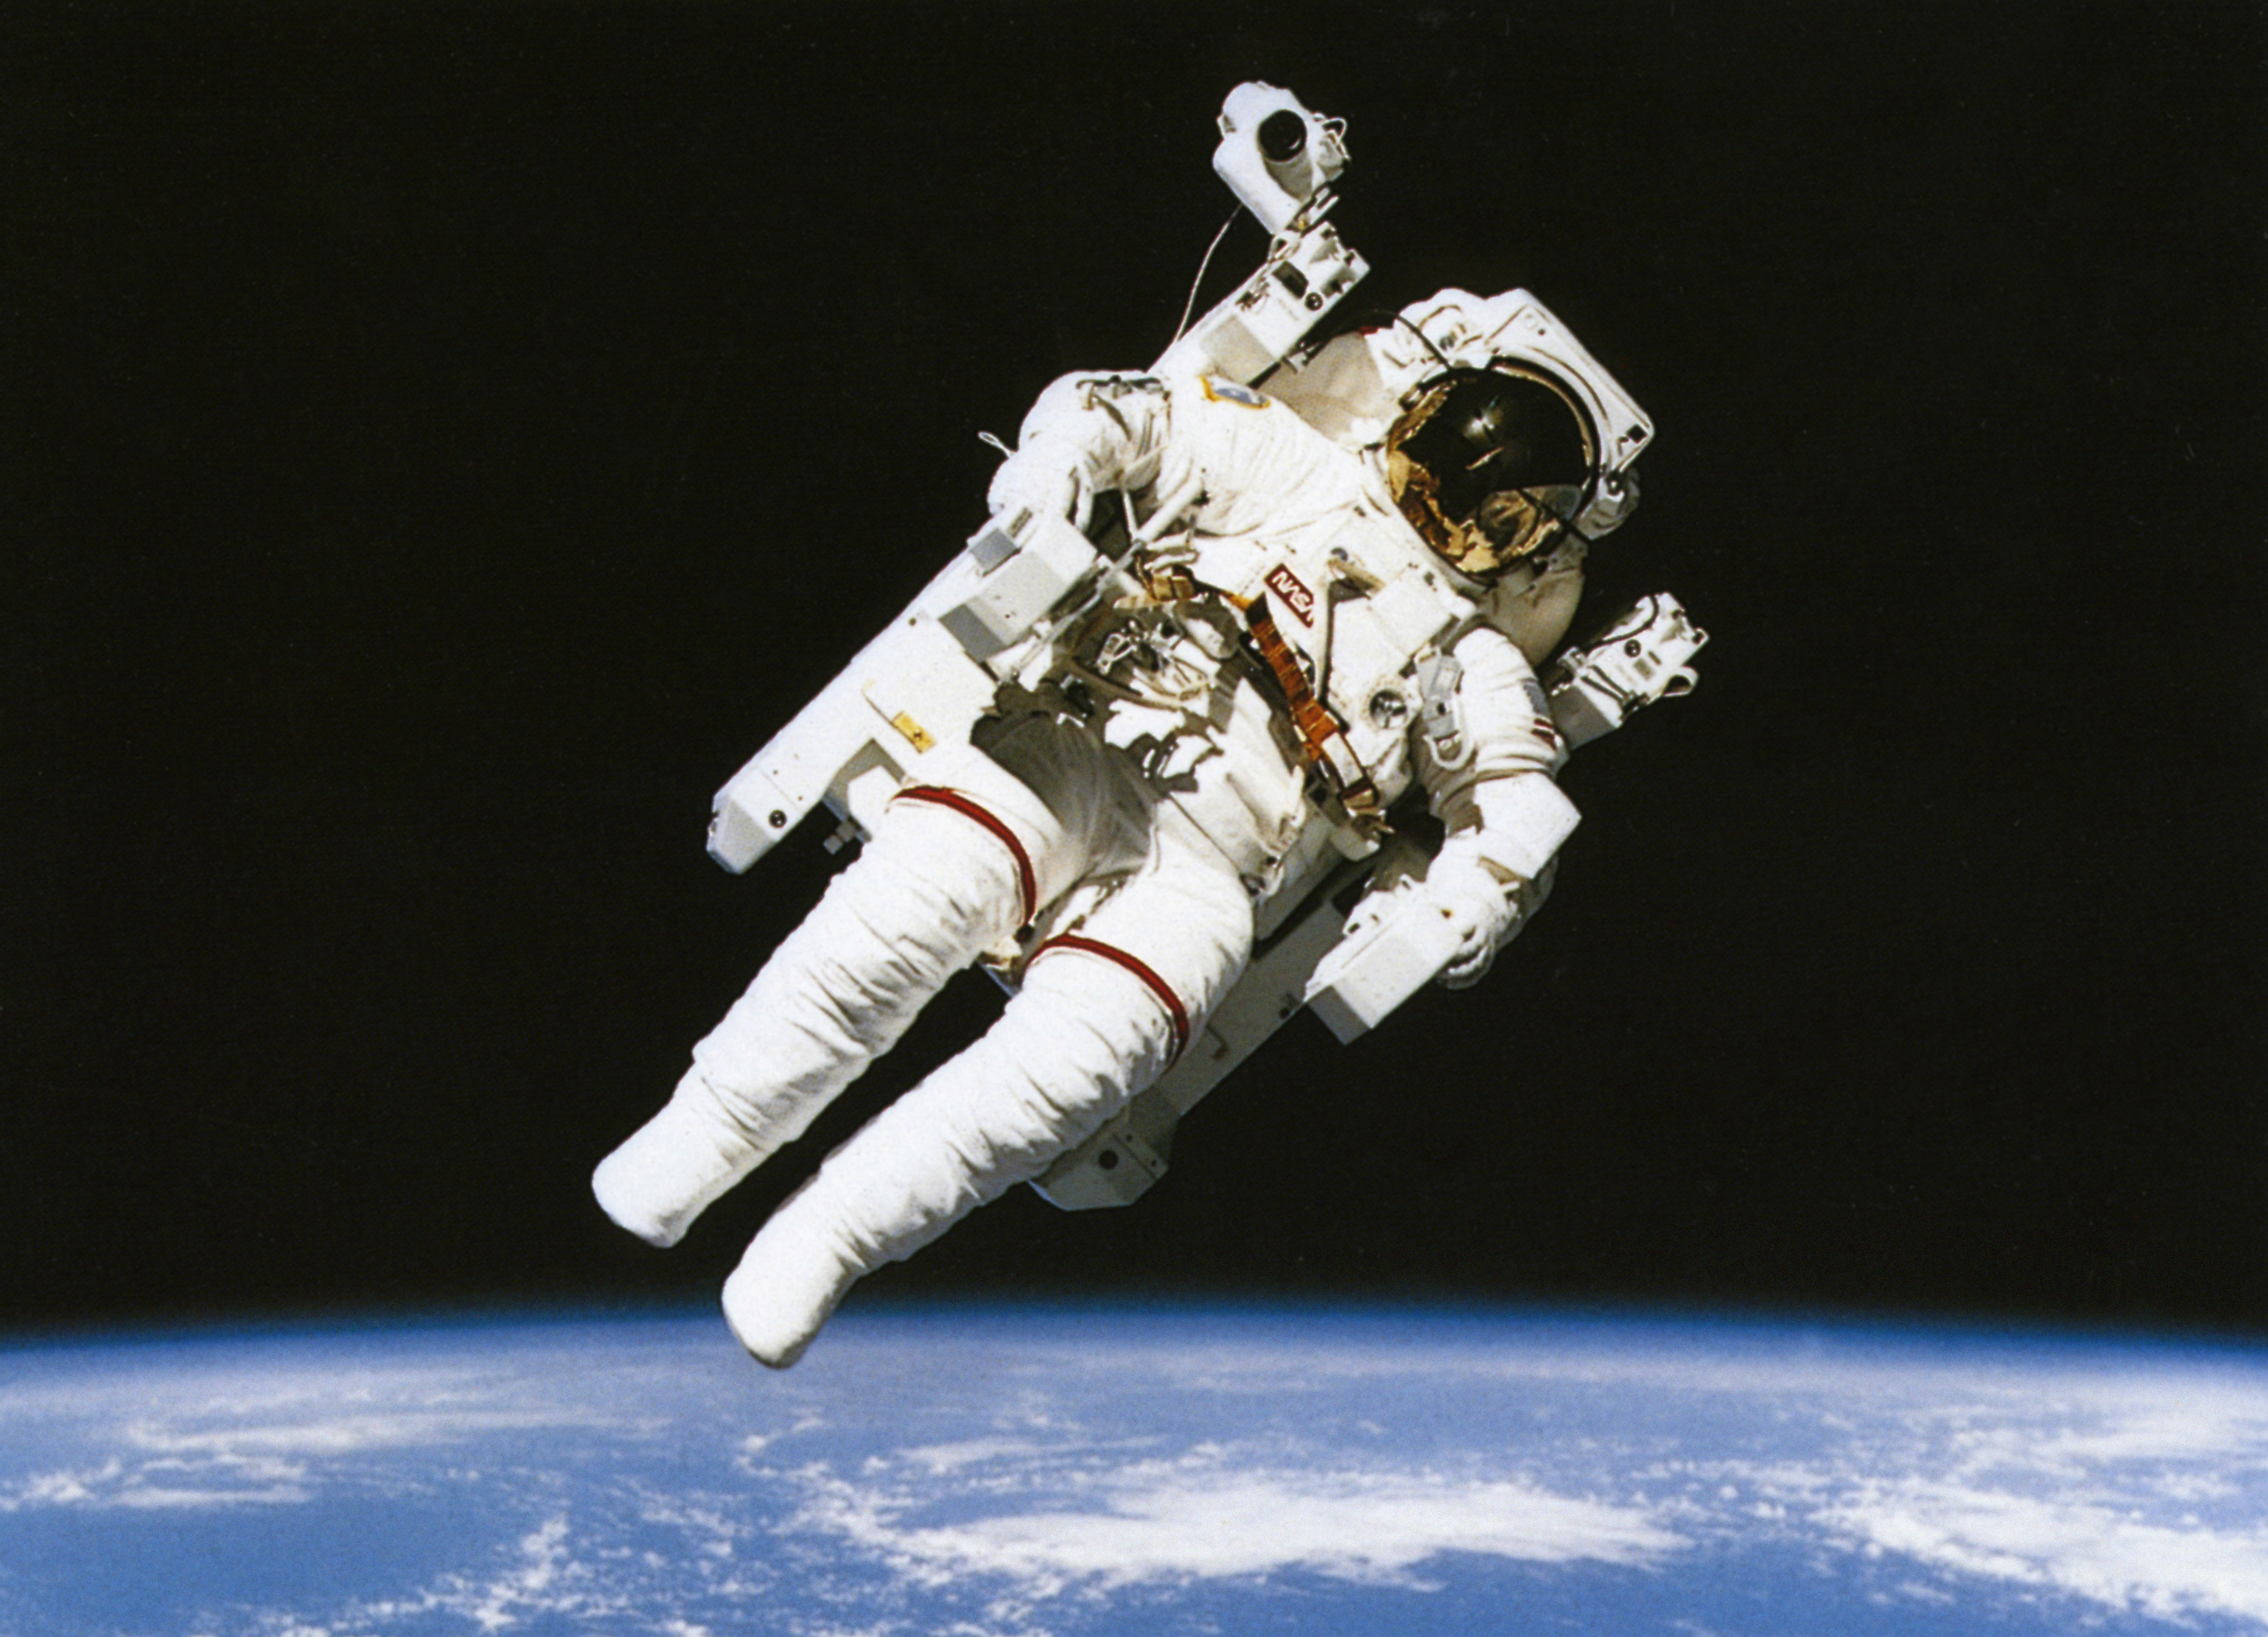 Science, Space, Nasa, Astronaut floating in orbit above the earth during spacewalk.(Eye Ubiquitous--UIG via Getty Images)